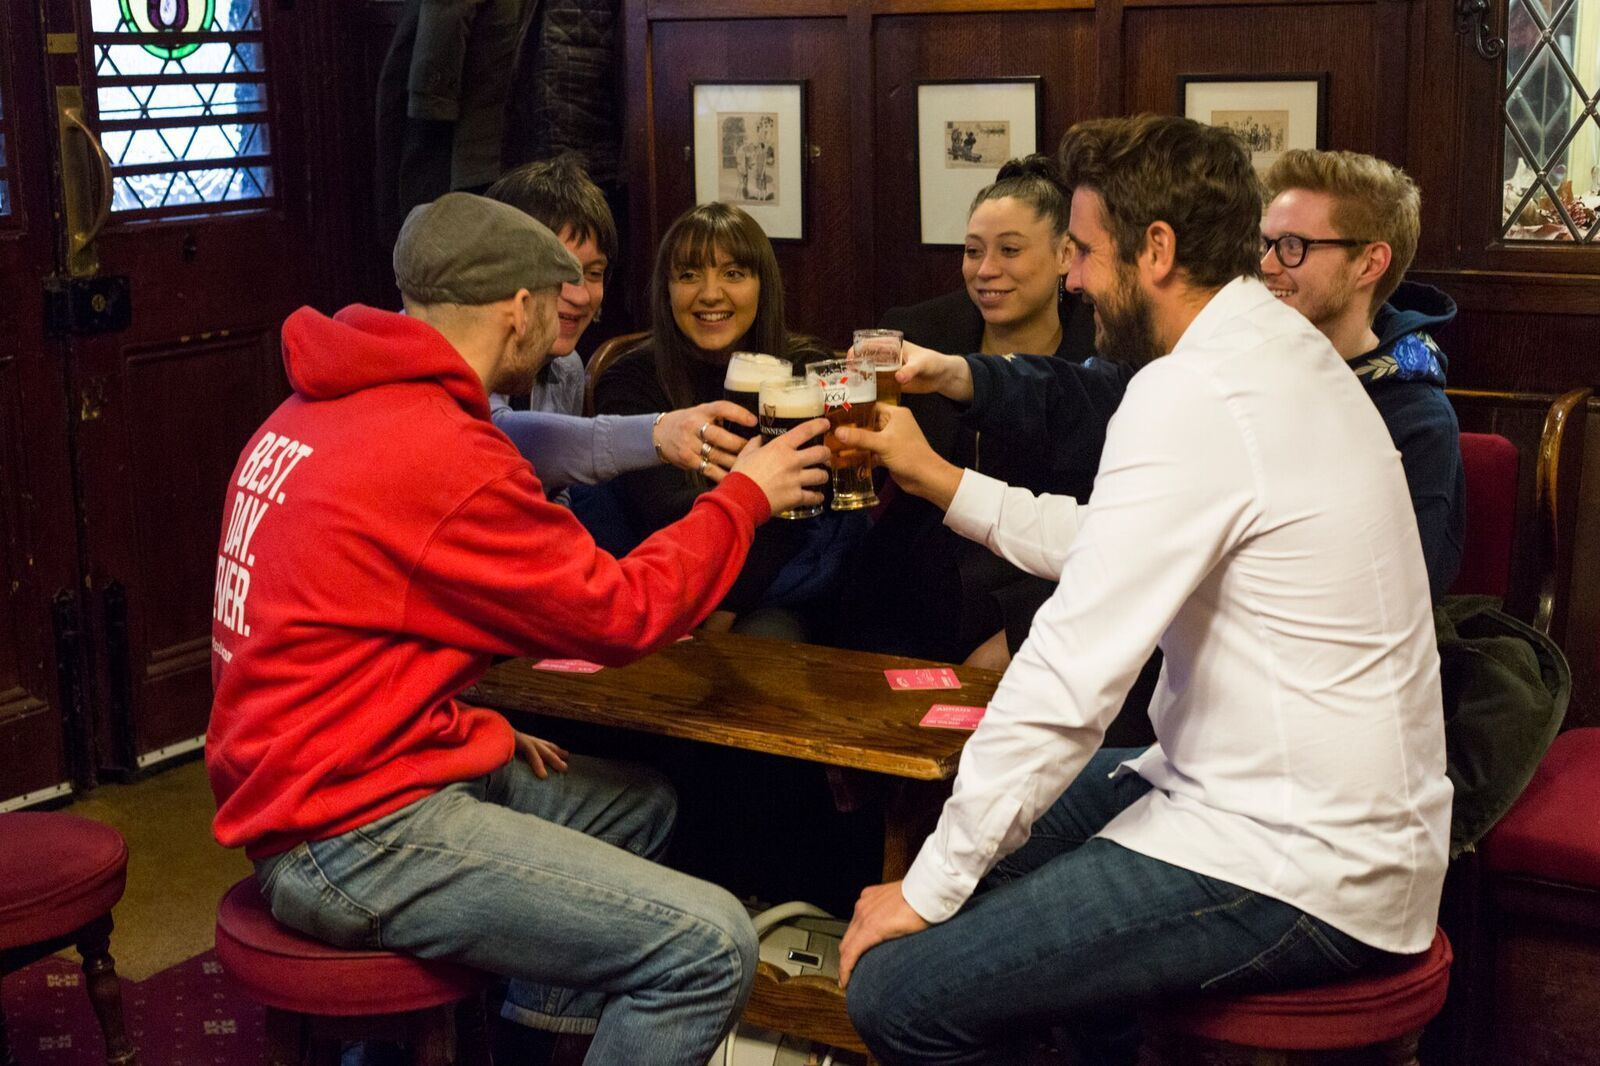 Tour group toasting with beer at a pub in London